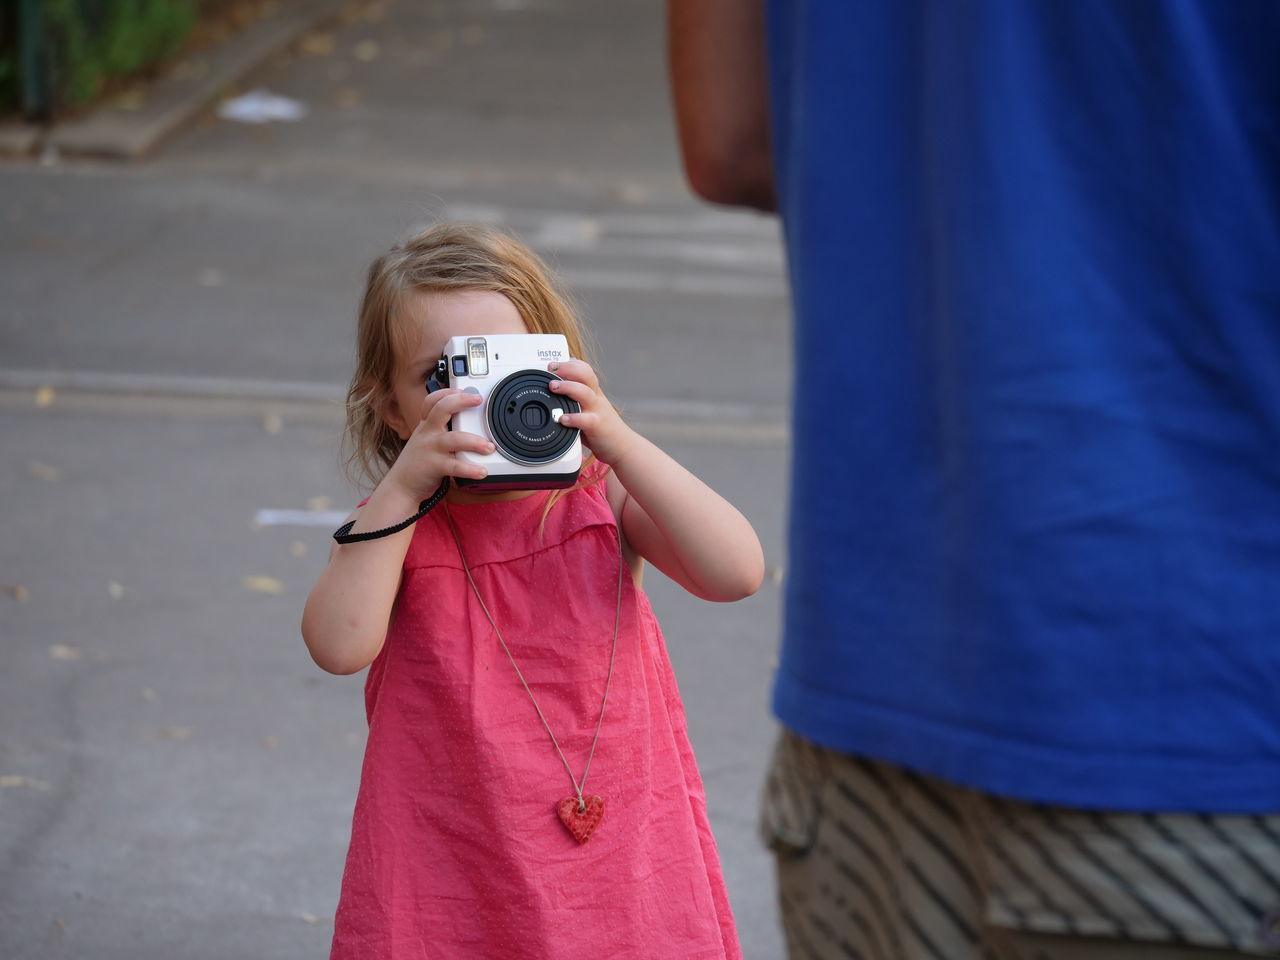 camera - photographic equipment, photography themes, photographing, real people, leisure activity, digital camera, photographer, digital single-lens reflex camera, childhood, technology, holding, girls, two people, outdoors, day, slr camera, casual clothing, camera, front view, lifestyles, togetherness, standing